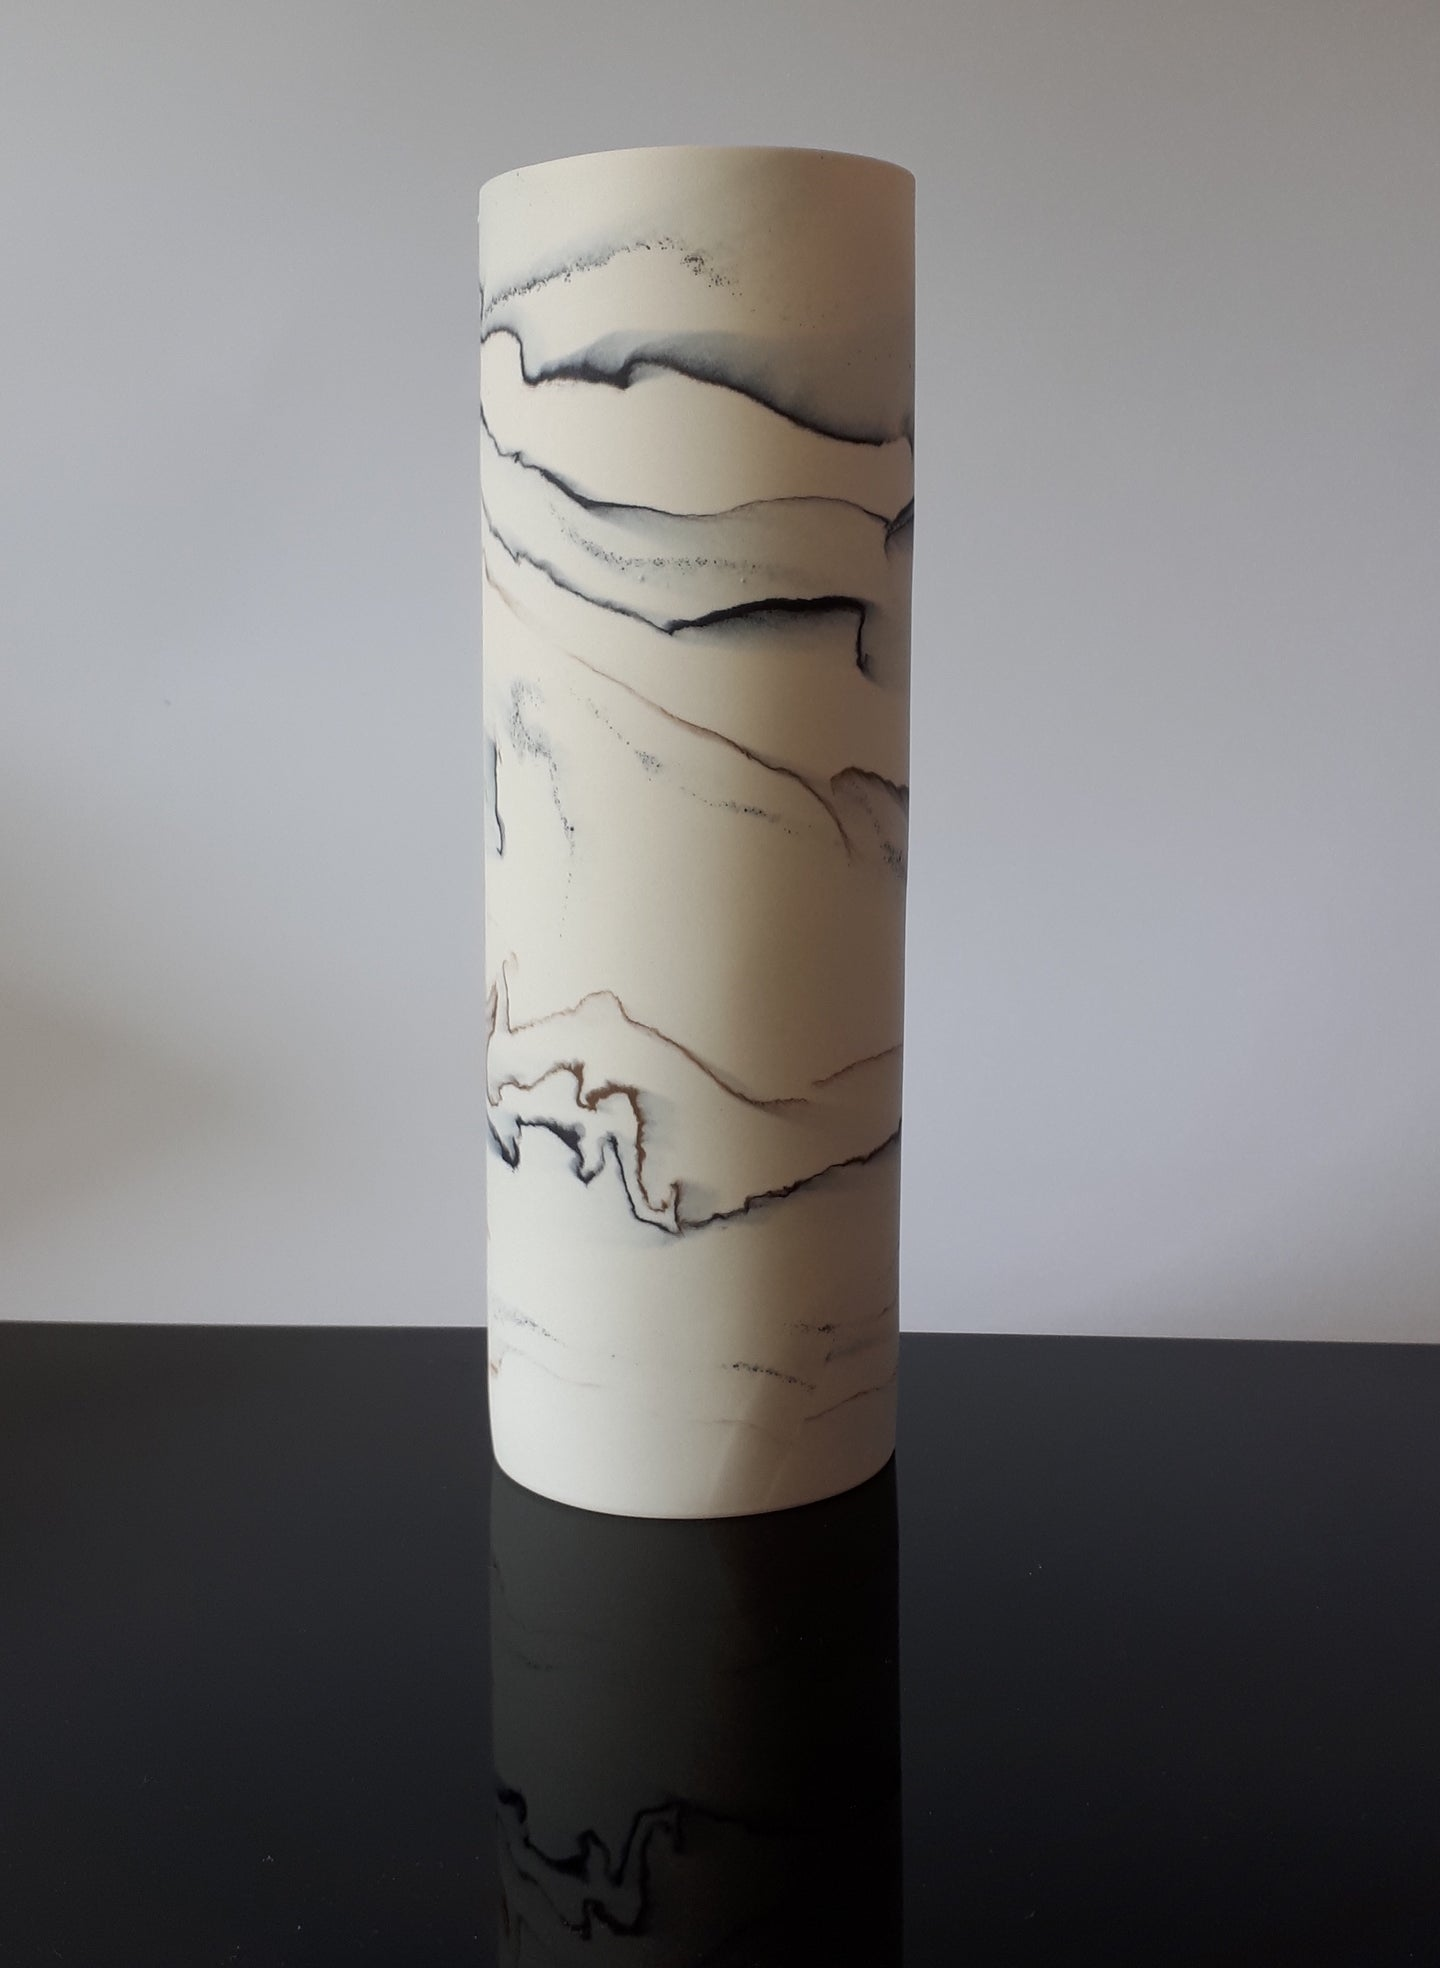 Tall porcelain vessel